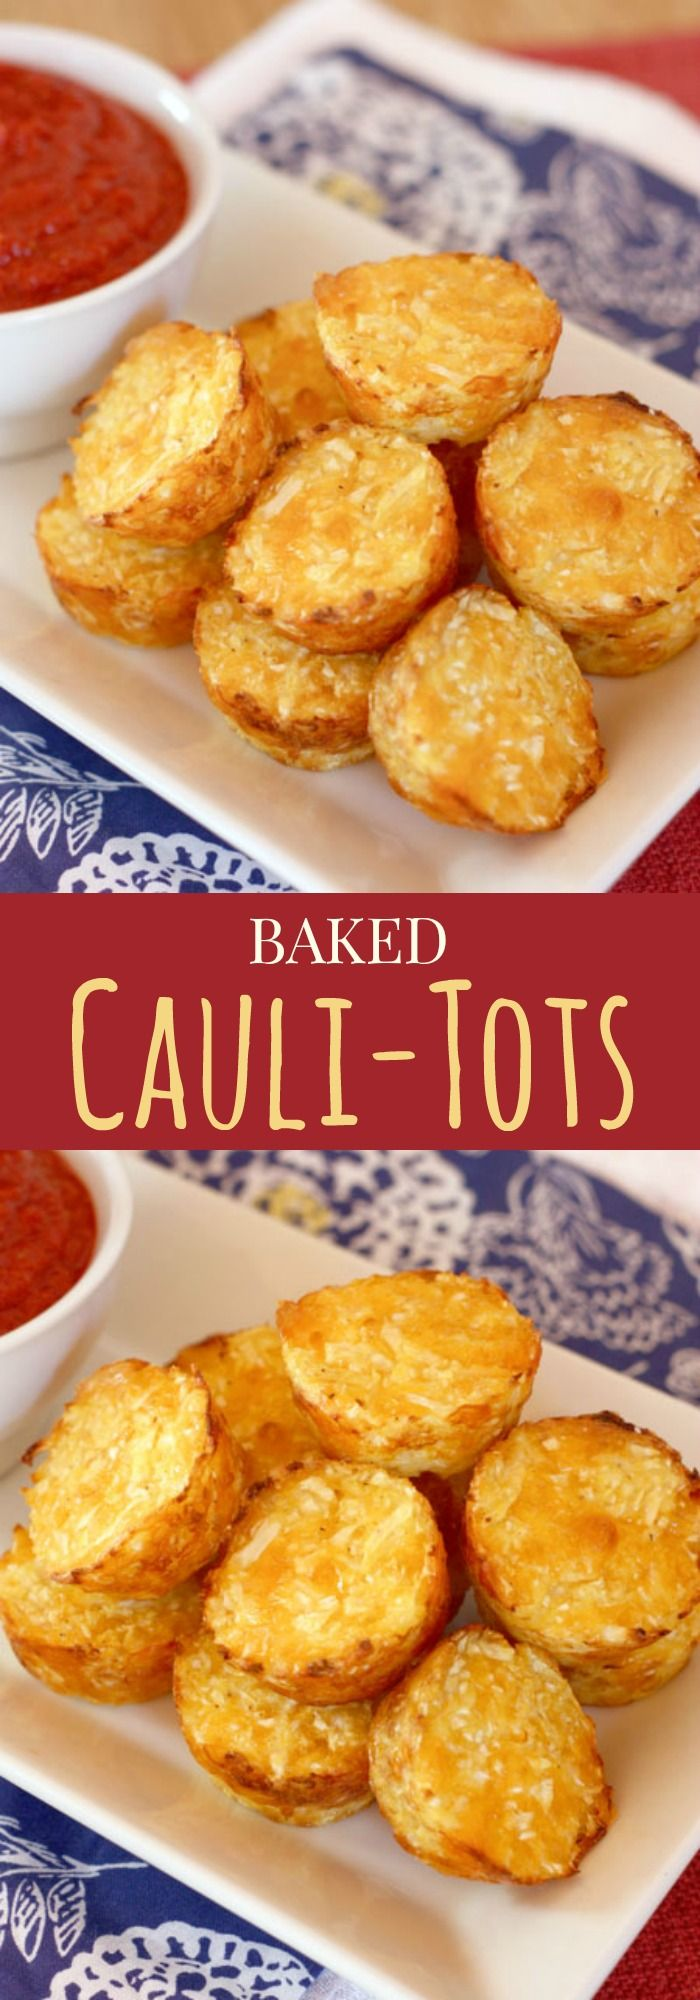 Baked Cauli-Tots - move over tater tots, there's a healthier and veggie-packed new side dish in town! This is our family favorite, plus get my pro tips for perfect cauliflower tots! | cupcakesandkalechips.com | gluten free, vegetarian